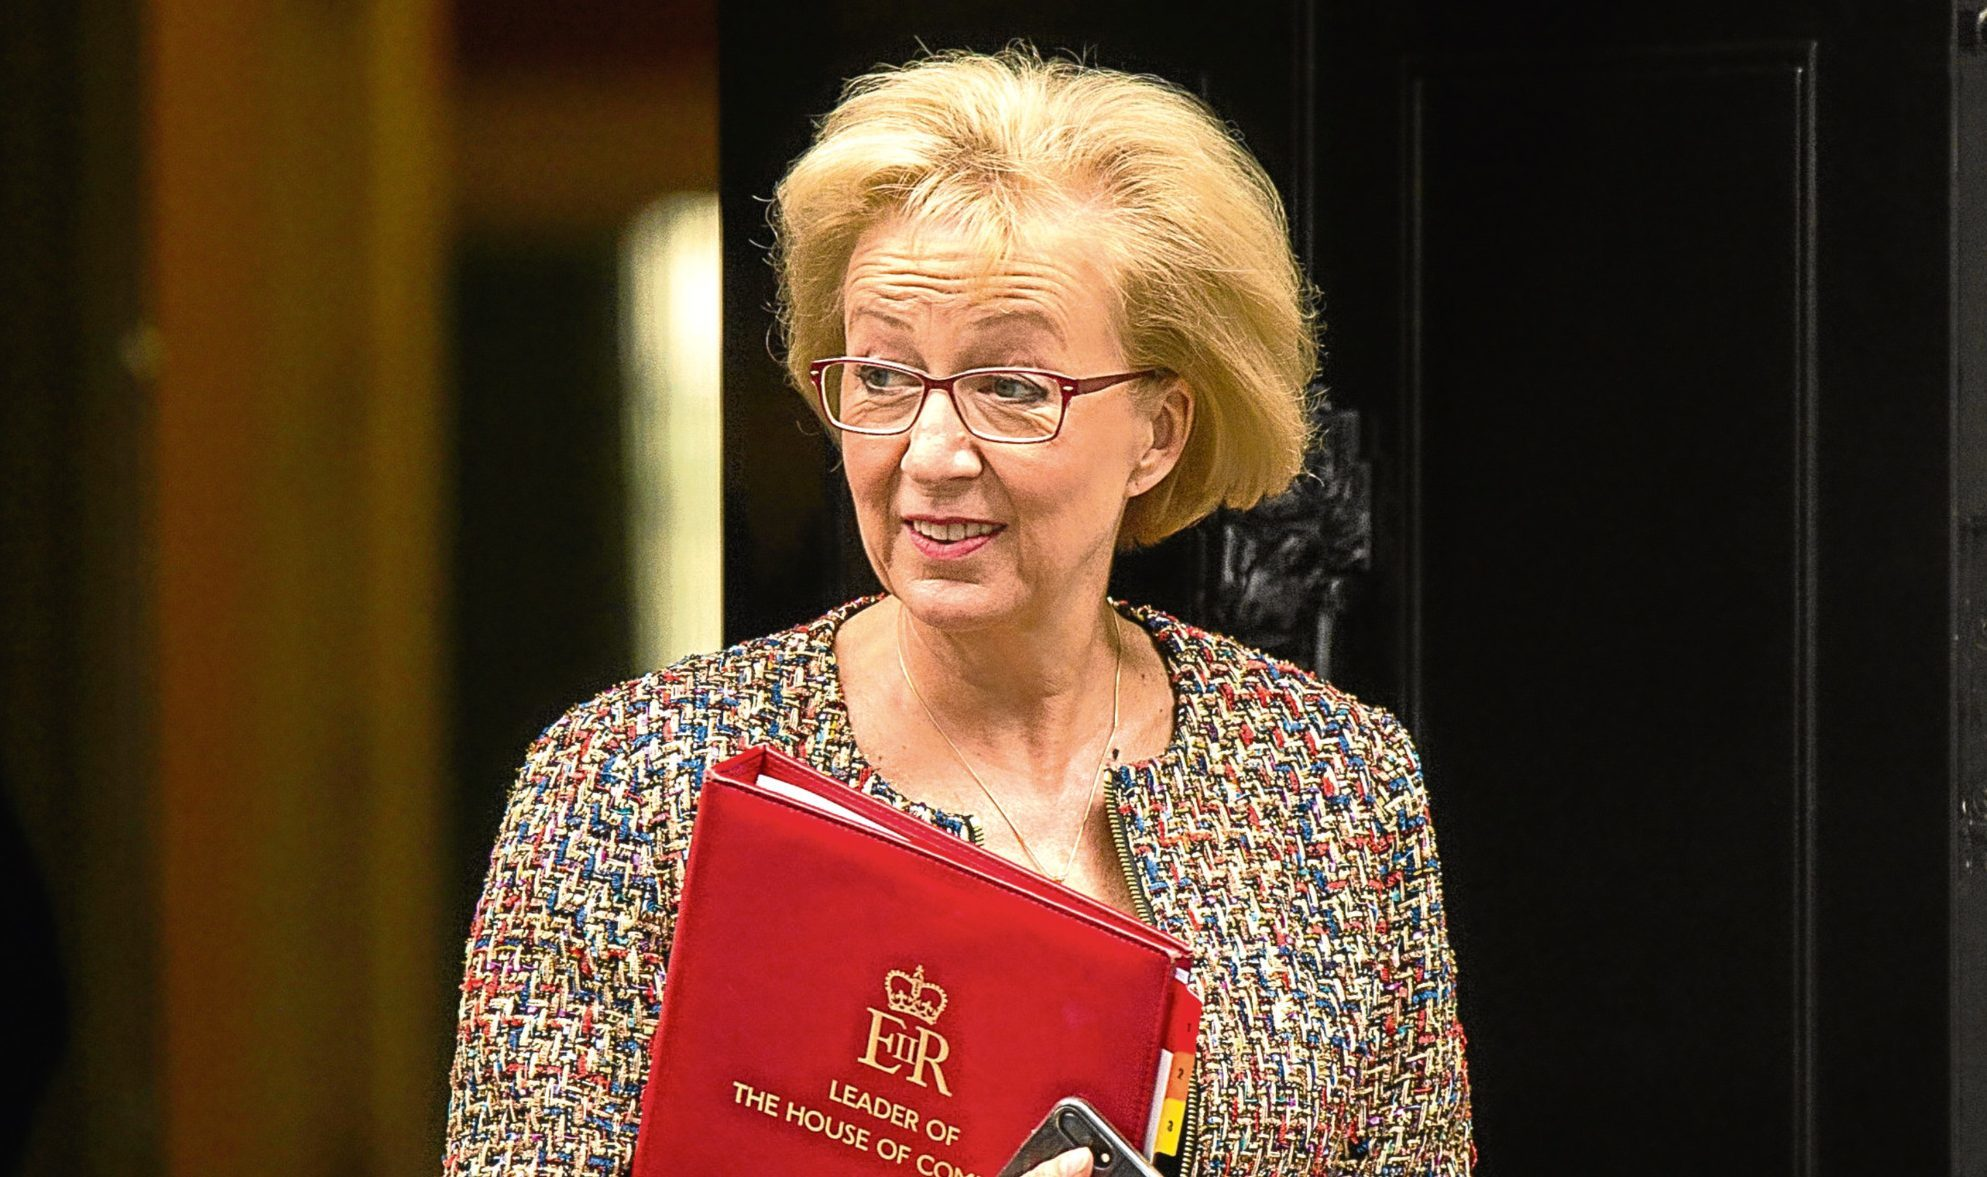 Andrea Leadsom insists she did not ask the Prime Minister to sack Defence Secretary Sir Michael Fallon.